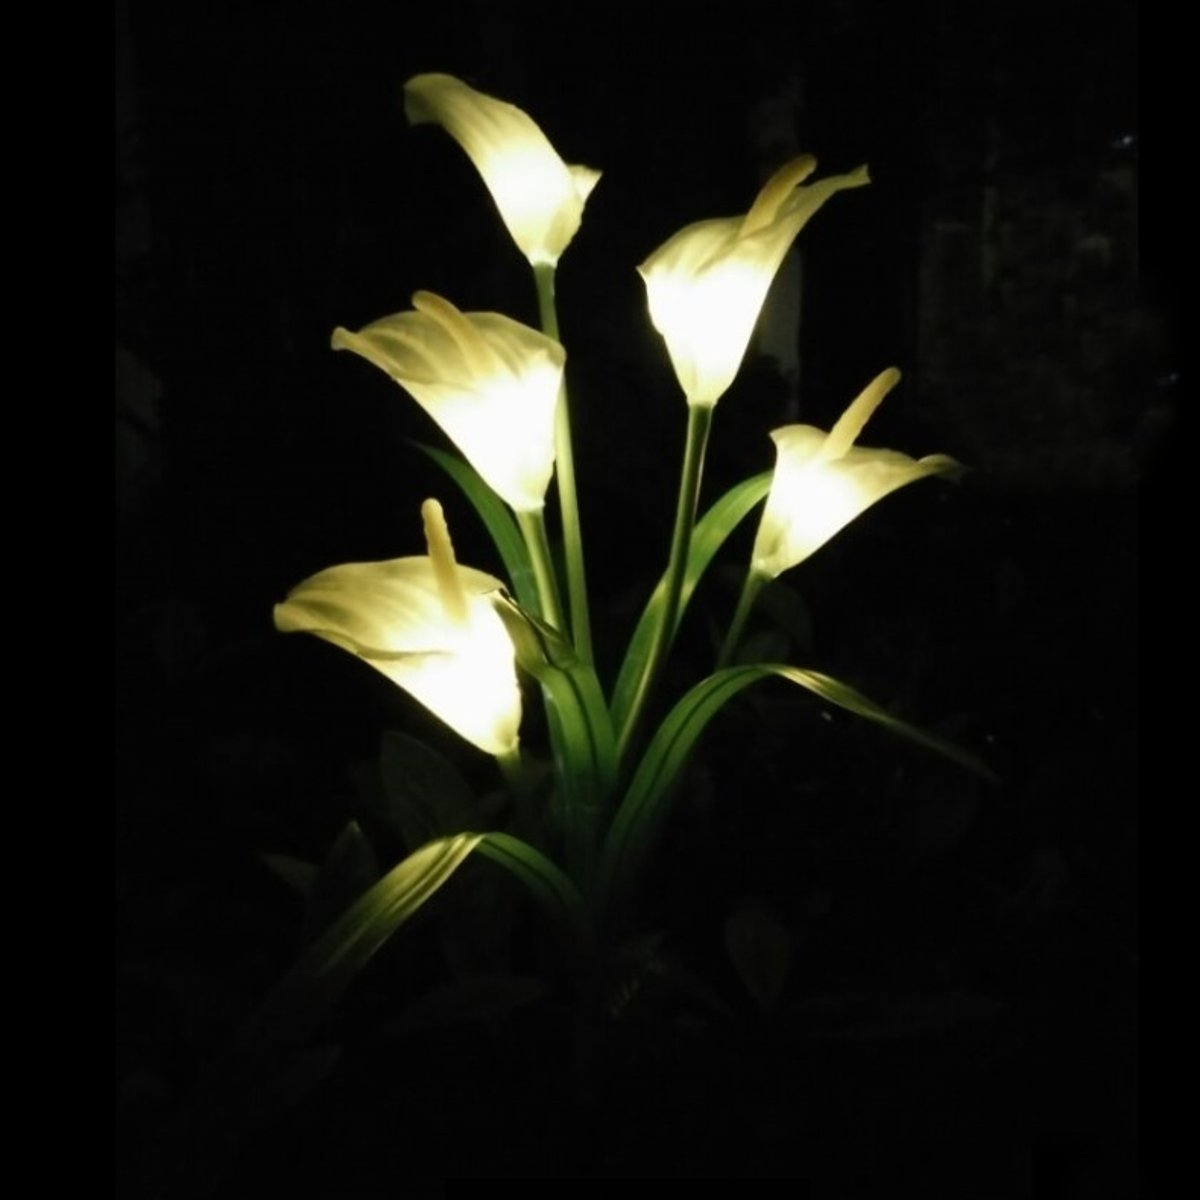 Solar Powered Outdoor Calla Lily Flower White LED Garden Yard Lawn Landscape Lamp Holiday Light